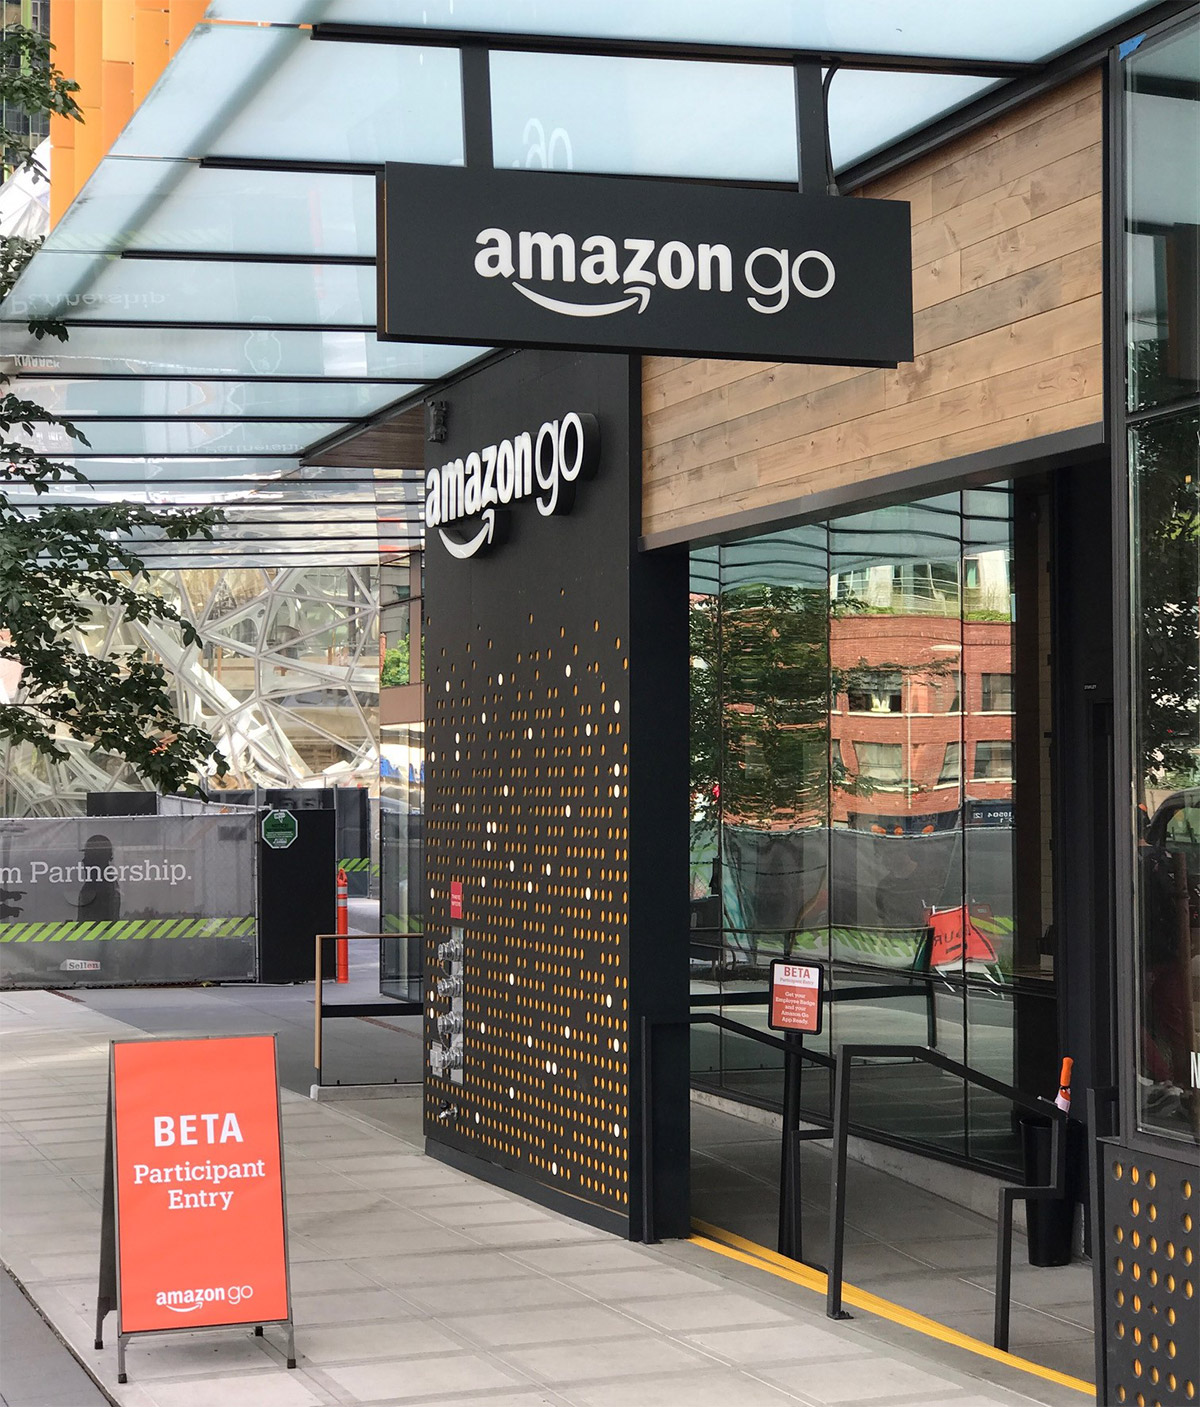 Amazon-Go Convenience-Store am Hauptsitz von Amazon in Seattle - 2017 noch in der Beta-Phase (Photo. Thomas Lang)